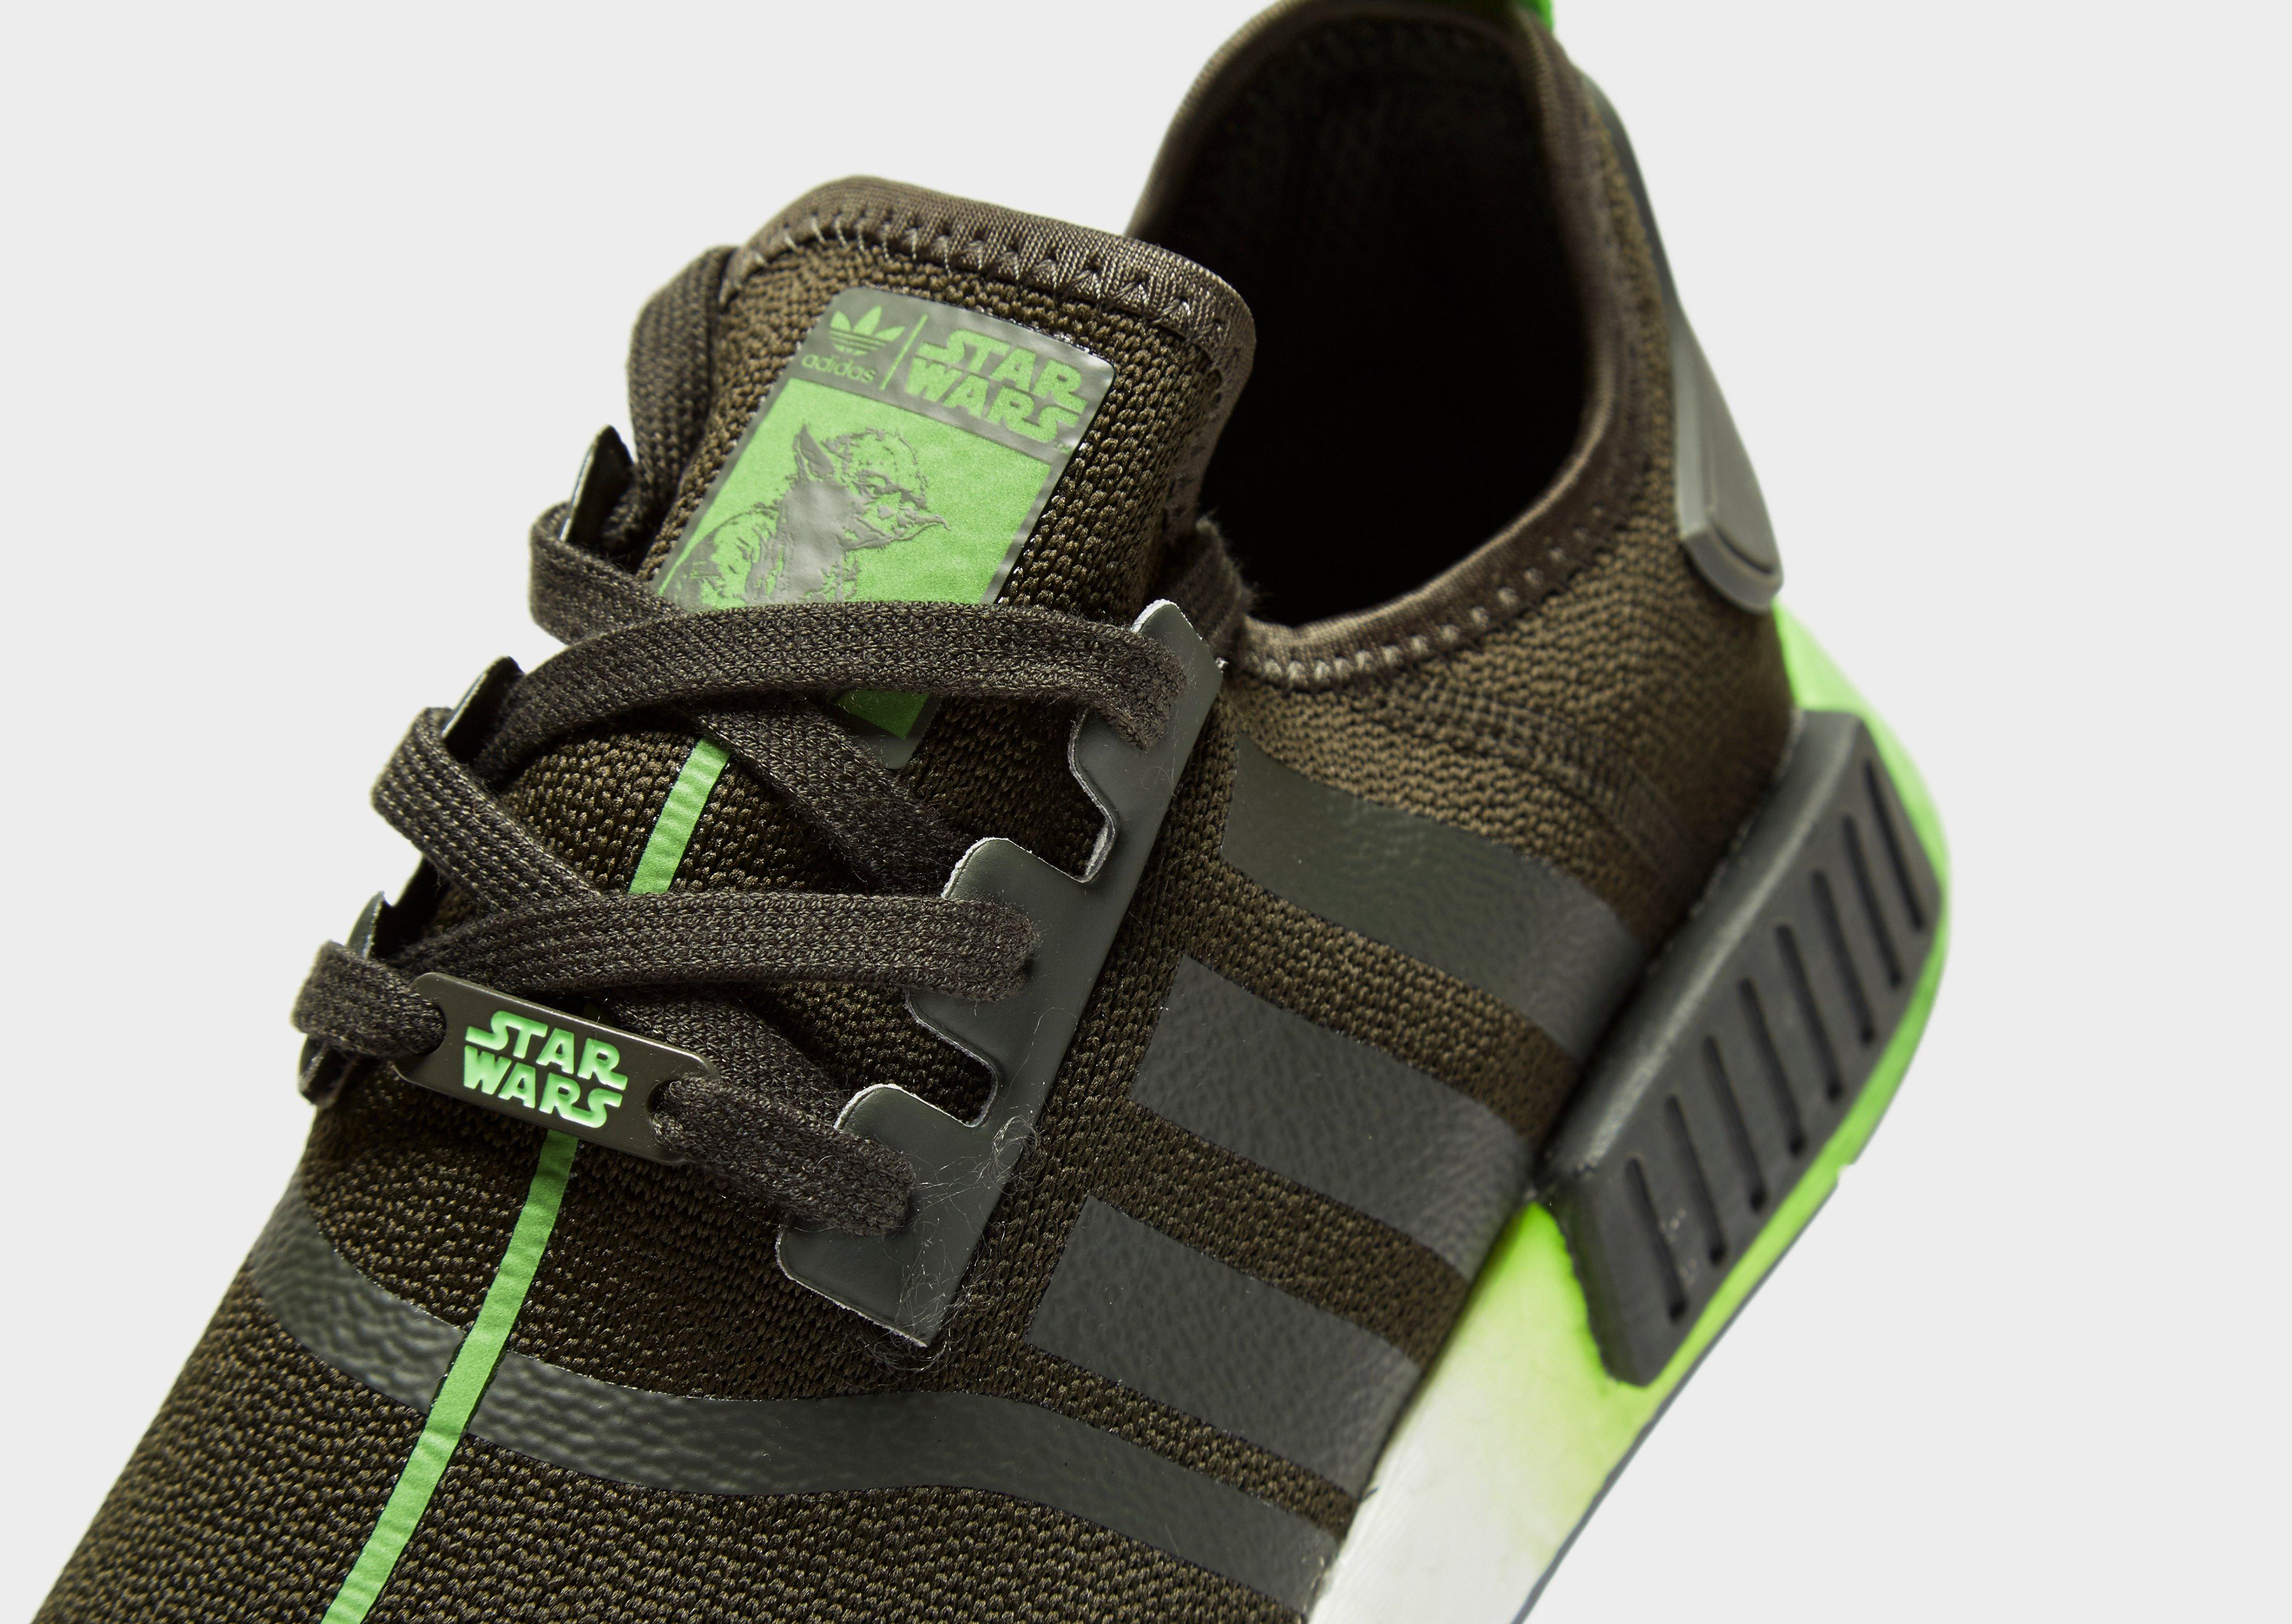 Cheap Adidas NMD R1 Shoes, Cheapest NMD R1 Boost Fake Outlet